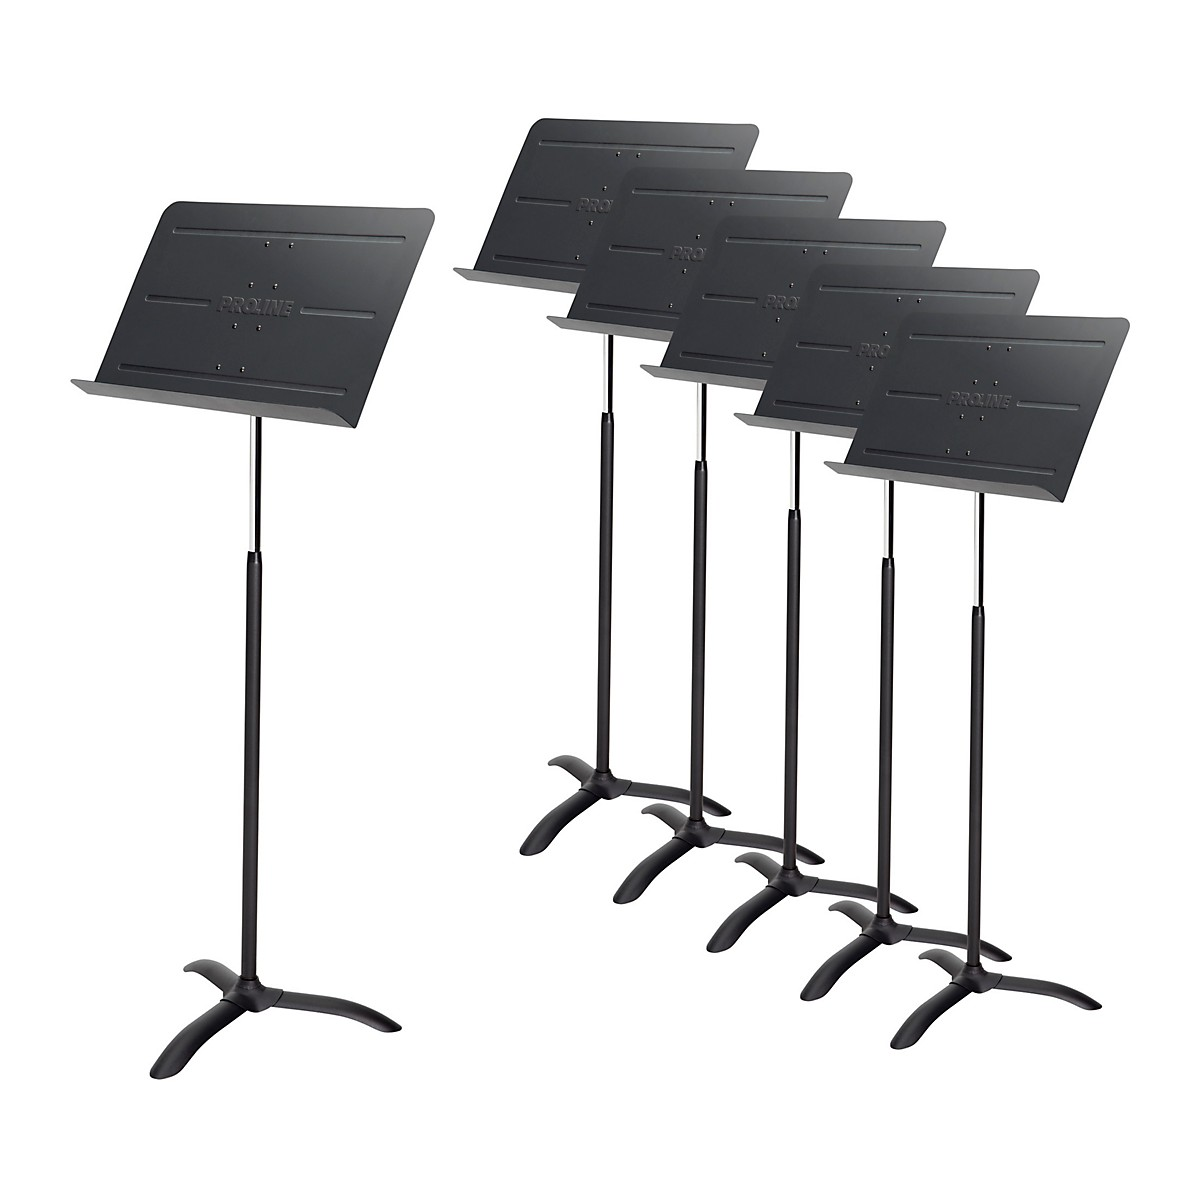 Proline Professional Orchestral Music Stand Black - 6-Pack